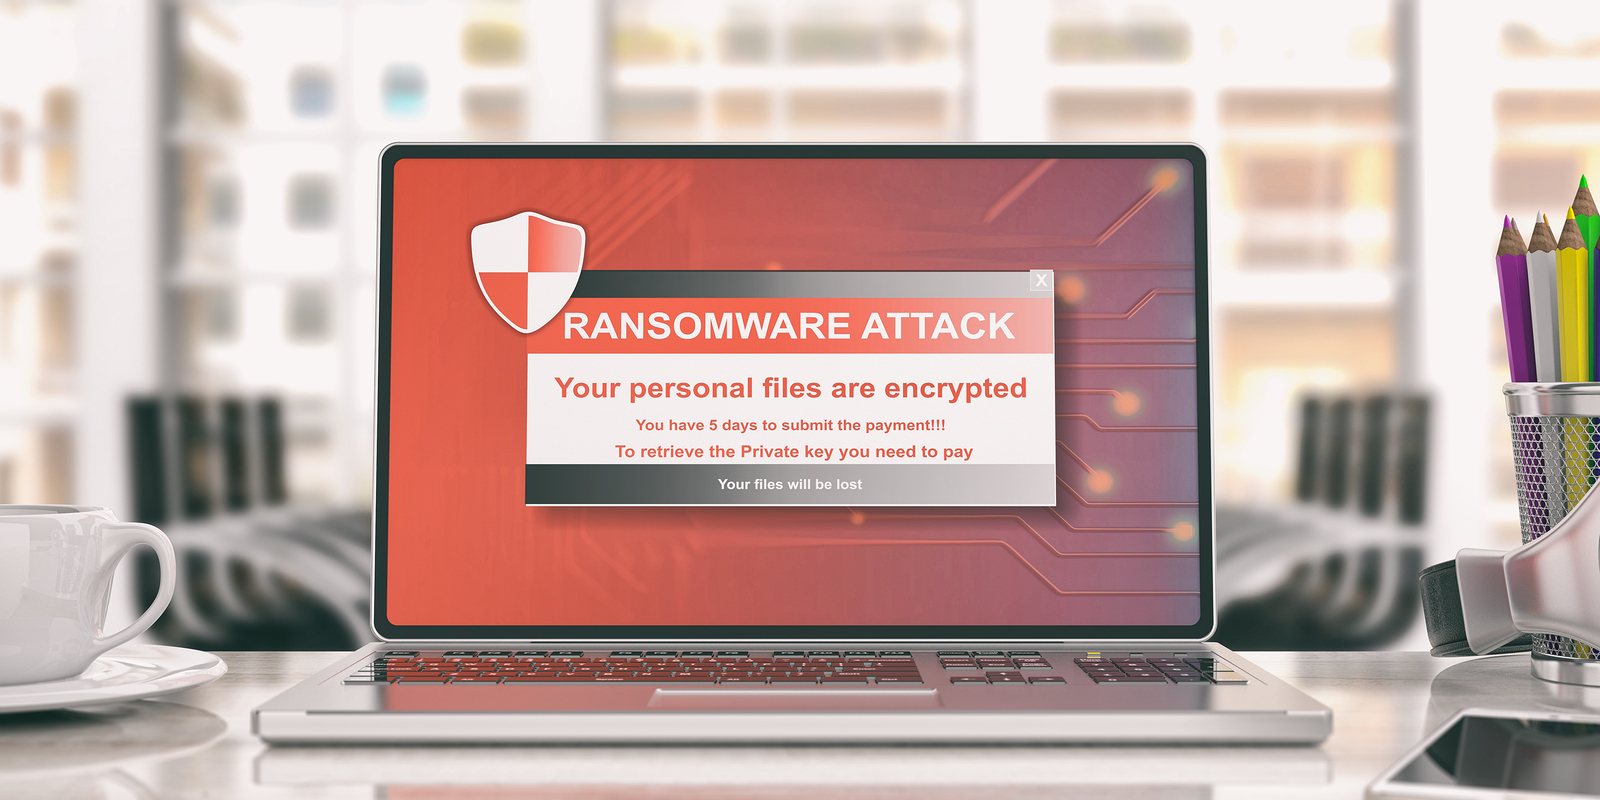 Every SMB should know these 4 things about ransomware and your network security.